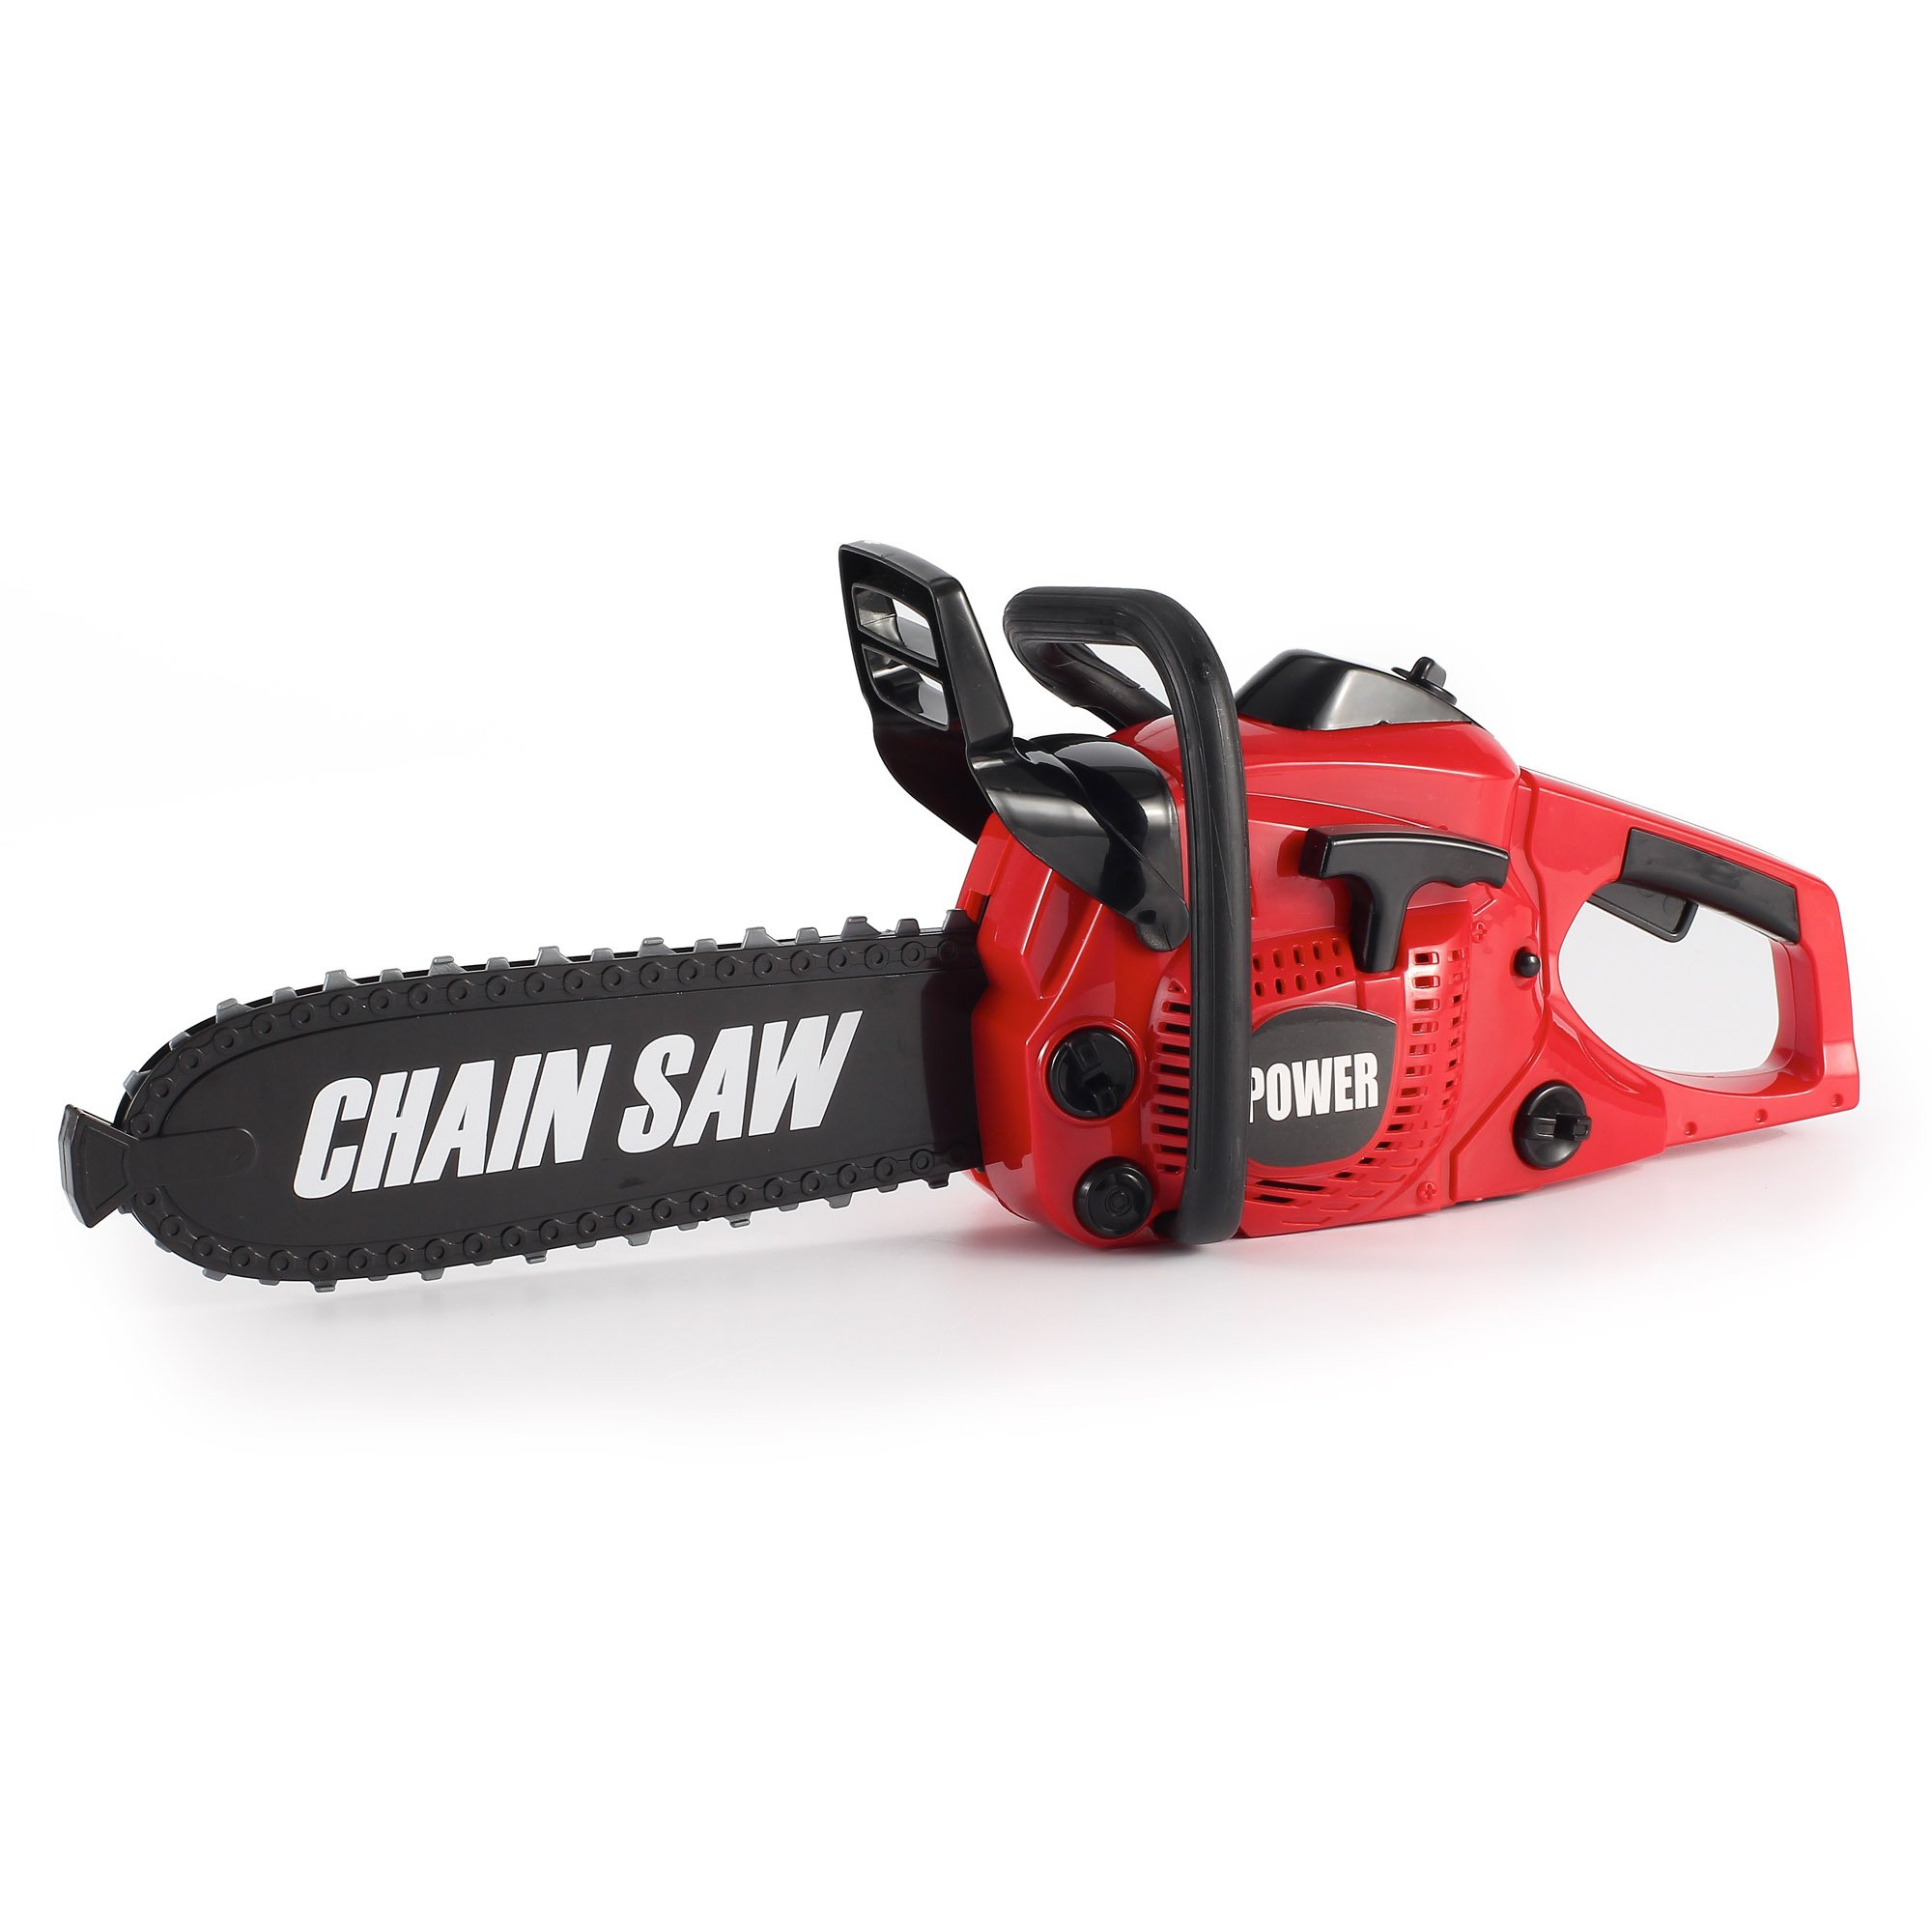 Liberty Imports Power Construction Tool Electric Chainsaw Toy Play Set with Rotating Chain and Realistic Sounds - Kids Pretend Construction Garden Yardwork by Liberty Imports